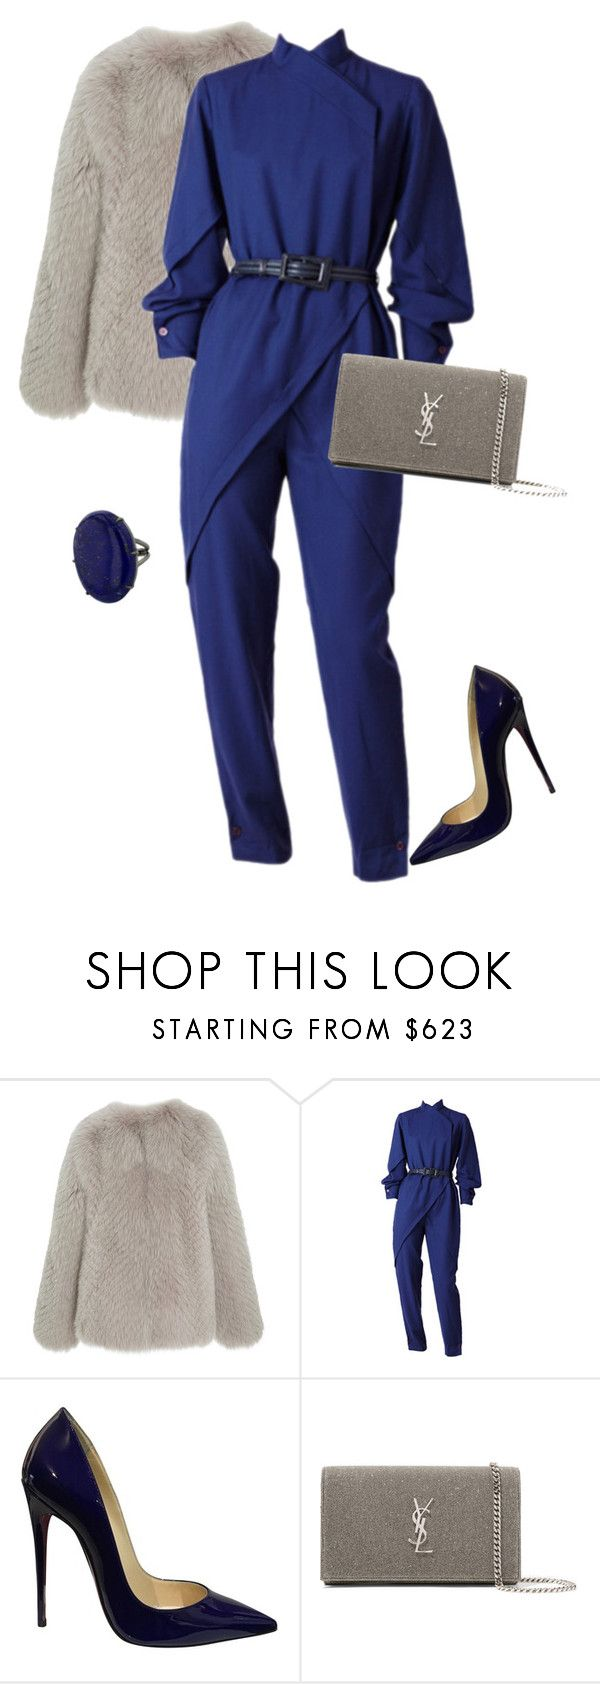 """outfit 7595"" by natalyag ❤ liked on Polyvore featuring Christian Louboutin, Yves Saint Laurent and jumpsuits"